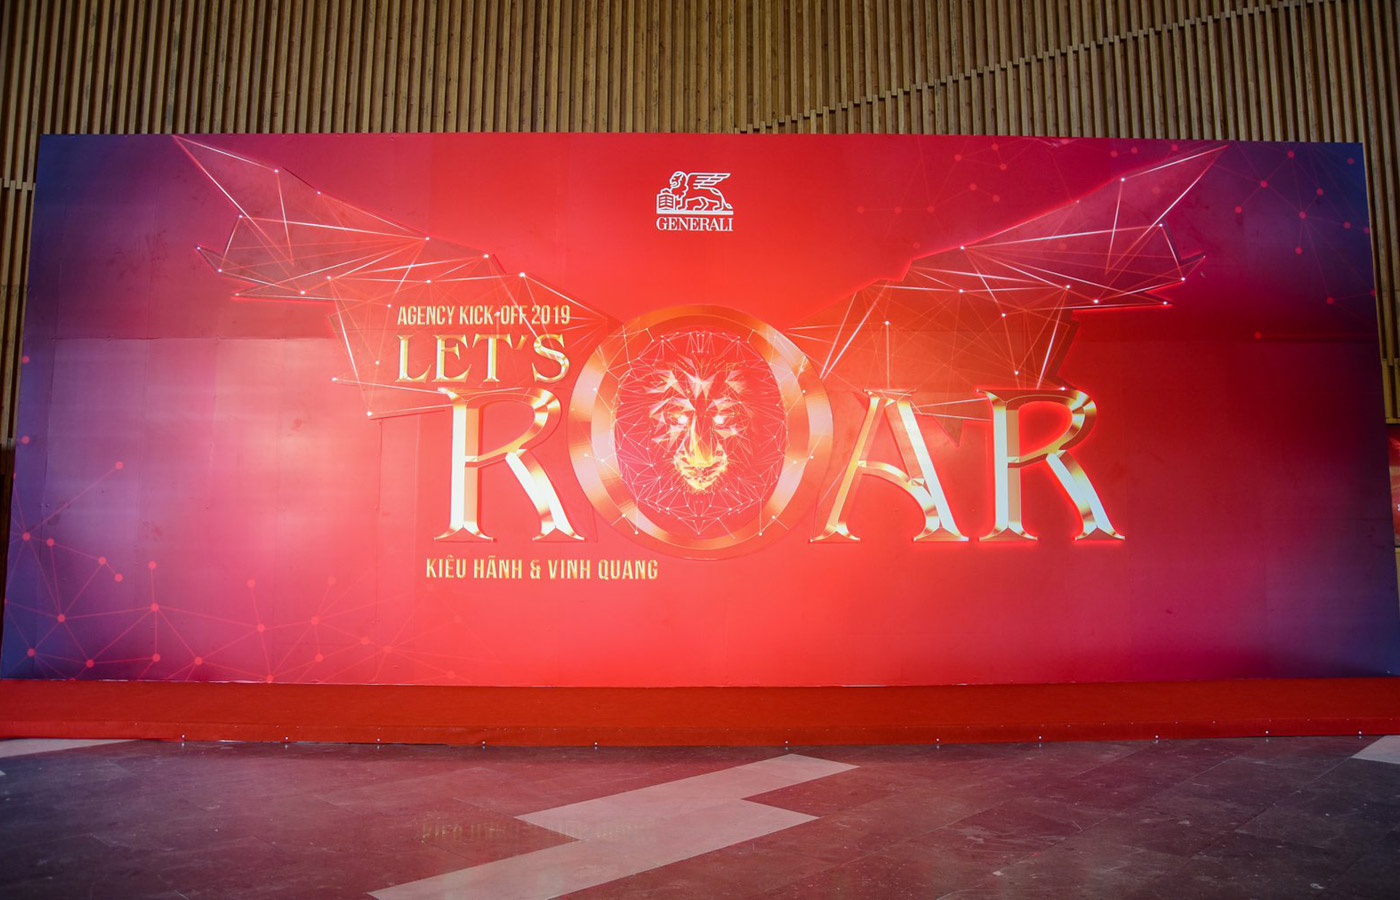 GENERALI VIETNAM (DANANG BRANCH): LET'S ROAR – AGENCY KICK-OFF 2019